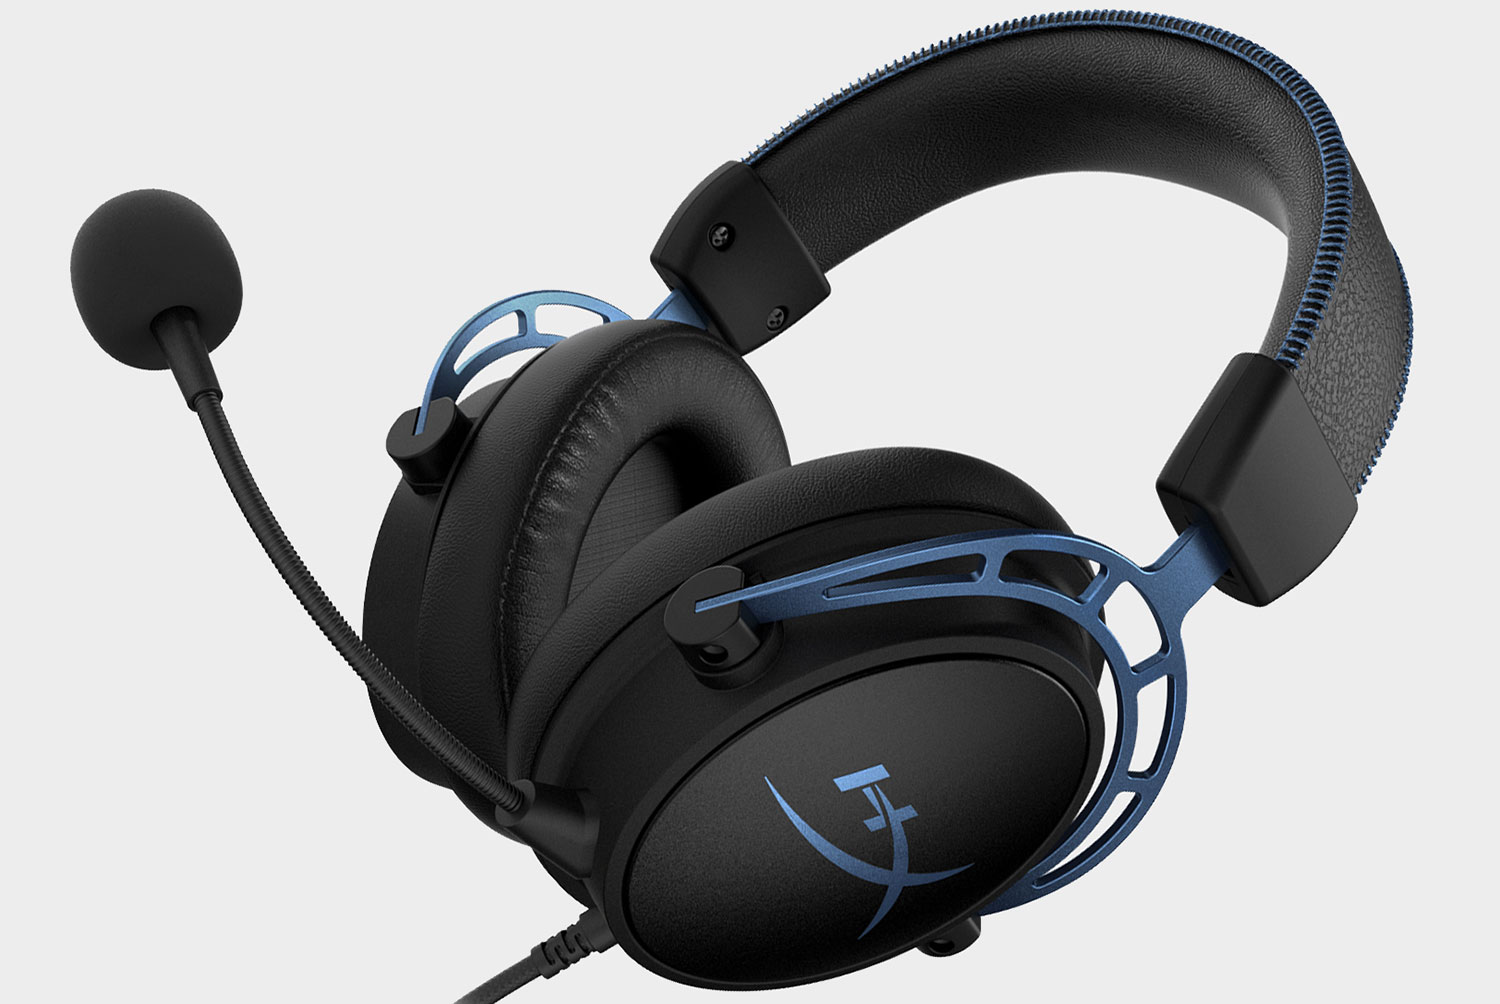 HyperX is adding a couple of nifty upgrades to our favorite gaming headset | PC Gamer